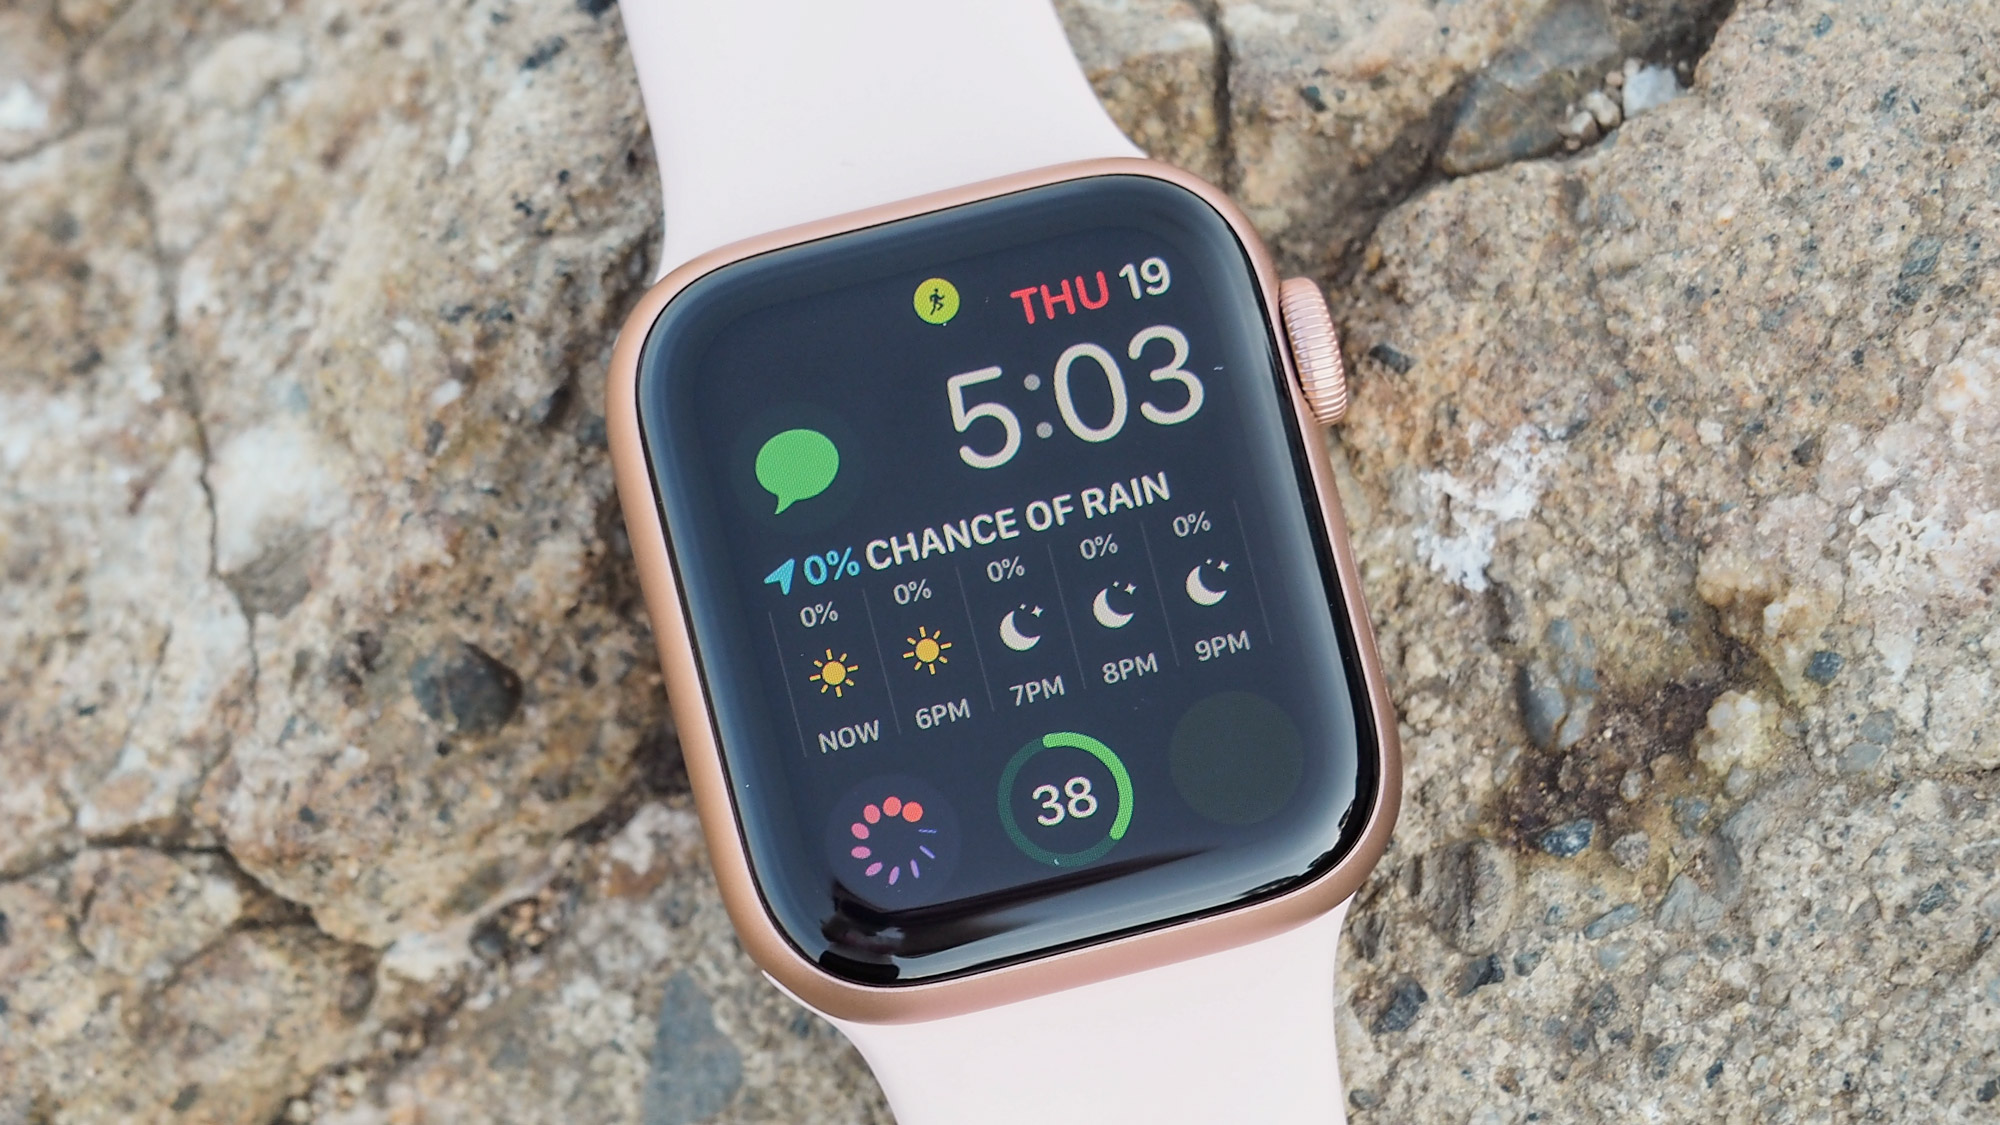 Apple Watch Series 5 User Manual